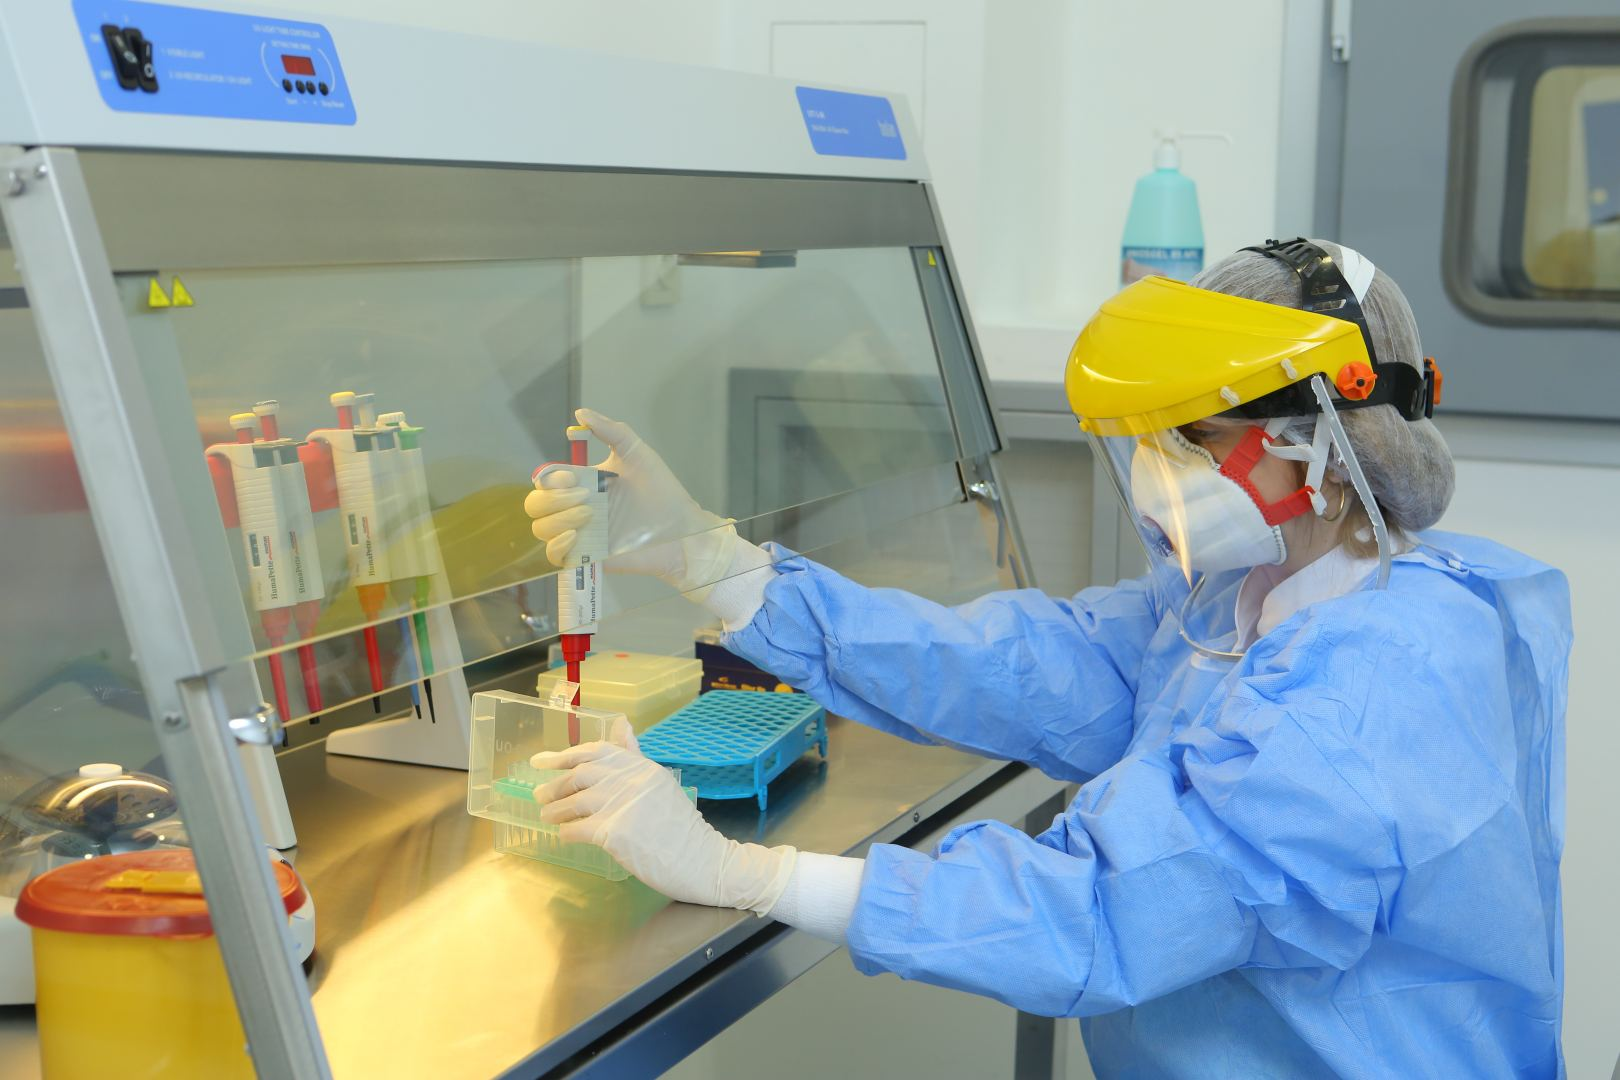 Turkish Ministry of Health to set up medical laboratory through tender